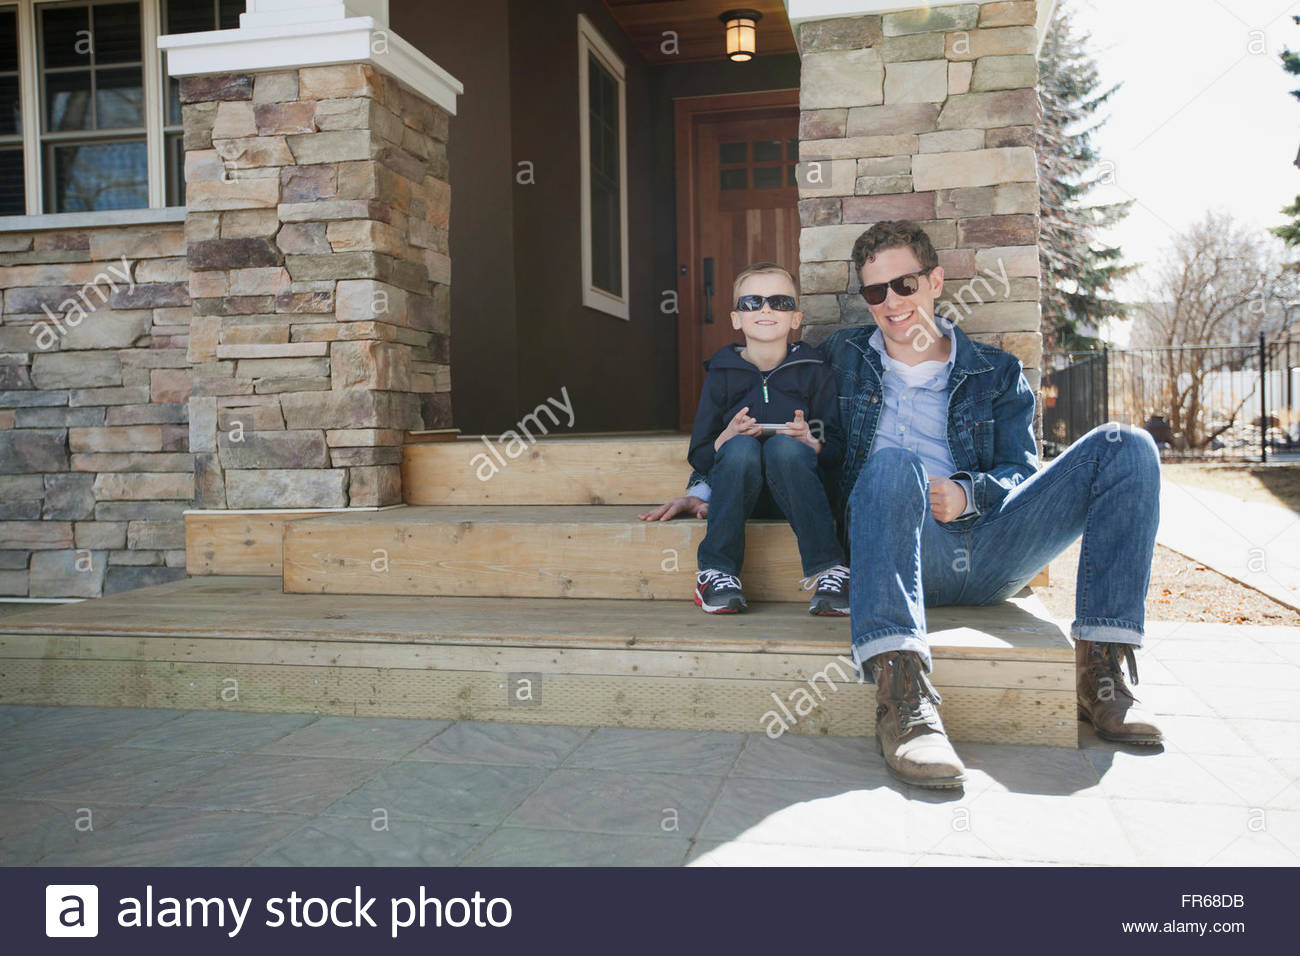 dad and son sitting on front stairs of residence - Stock Image